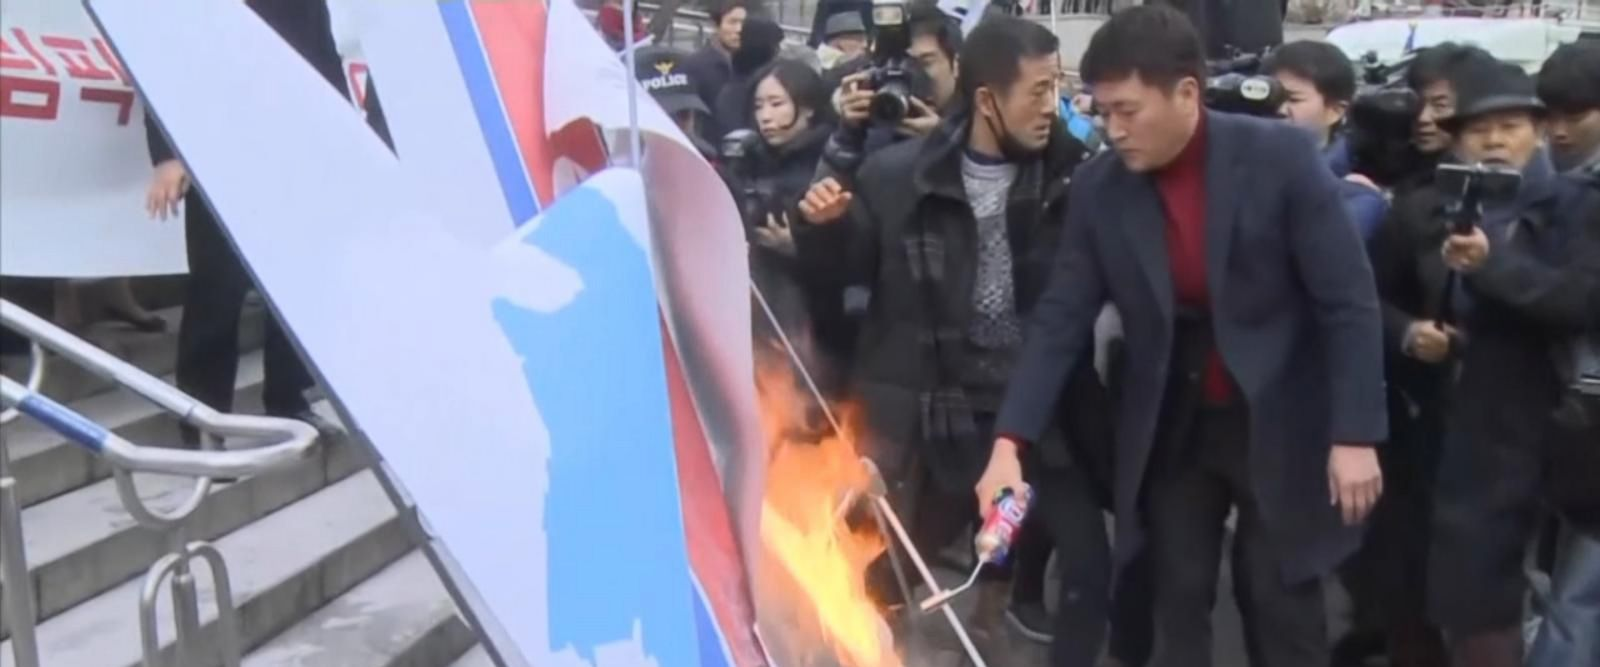 VIDEO: Protests show mixed response in South Korea to plan for Olympians from the North and South to march together and field a joint hockey team.